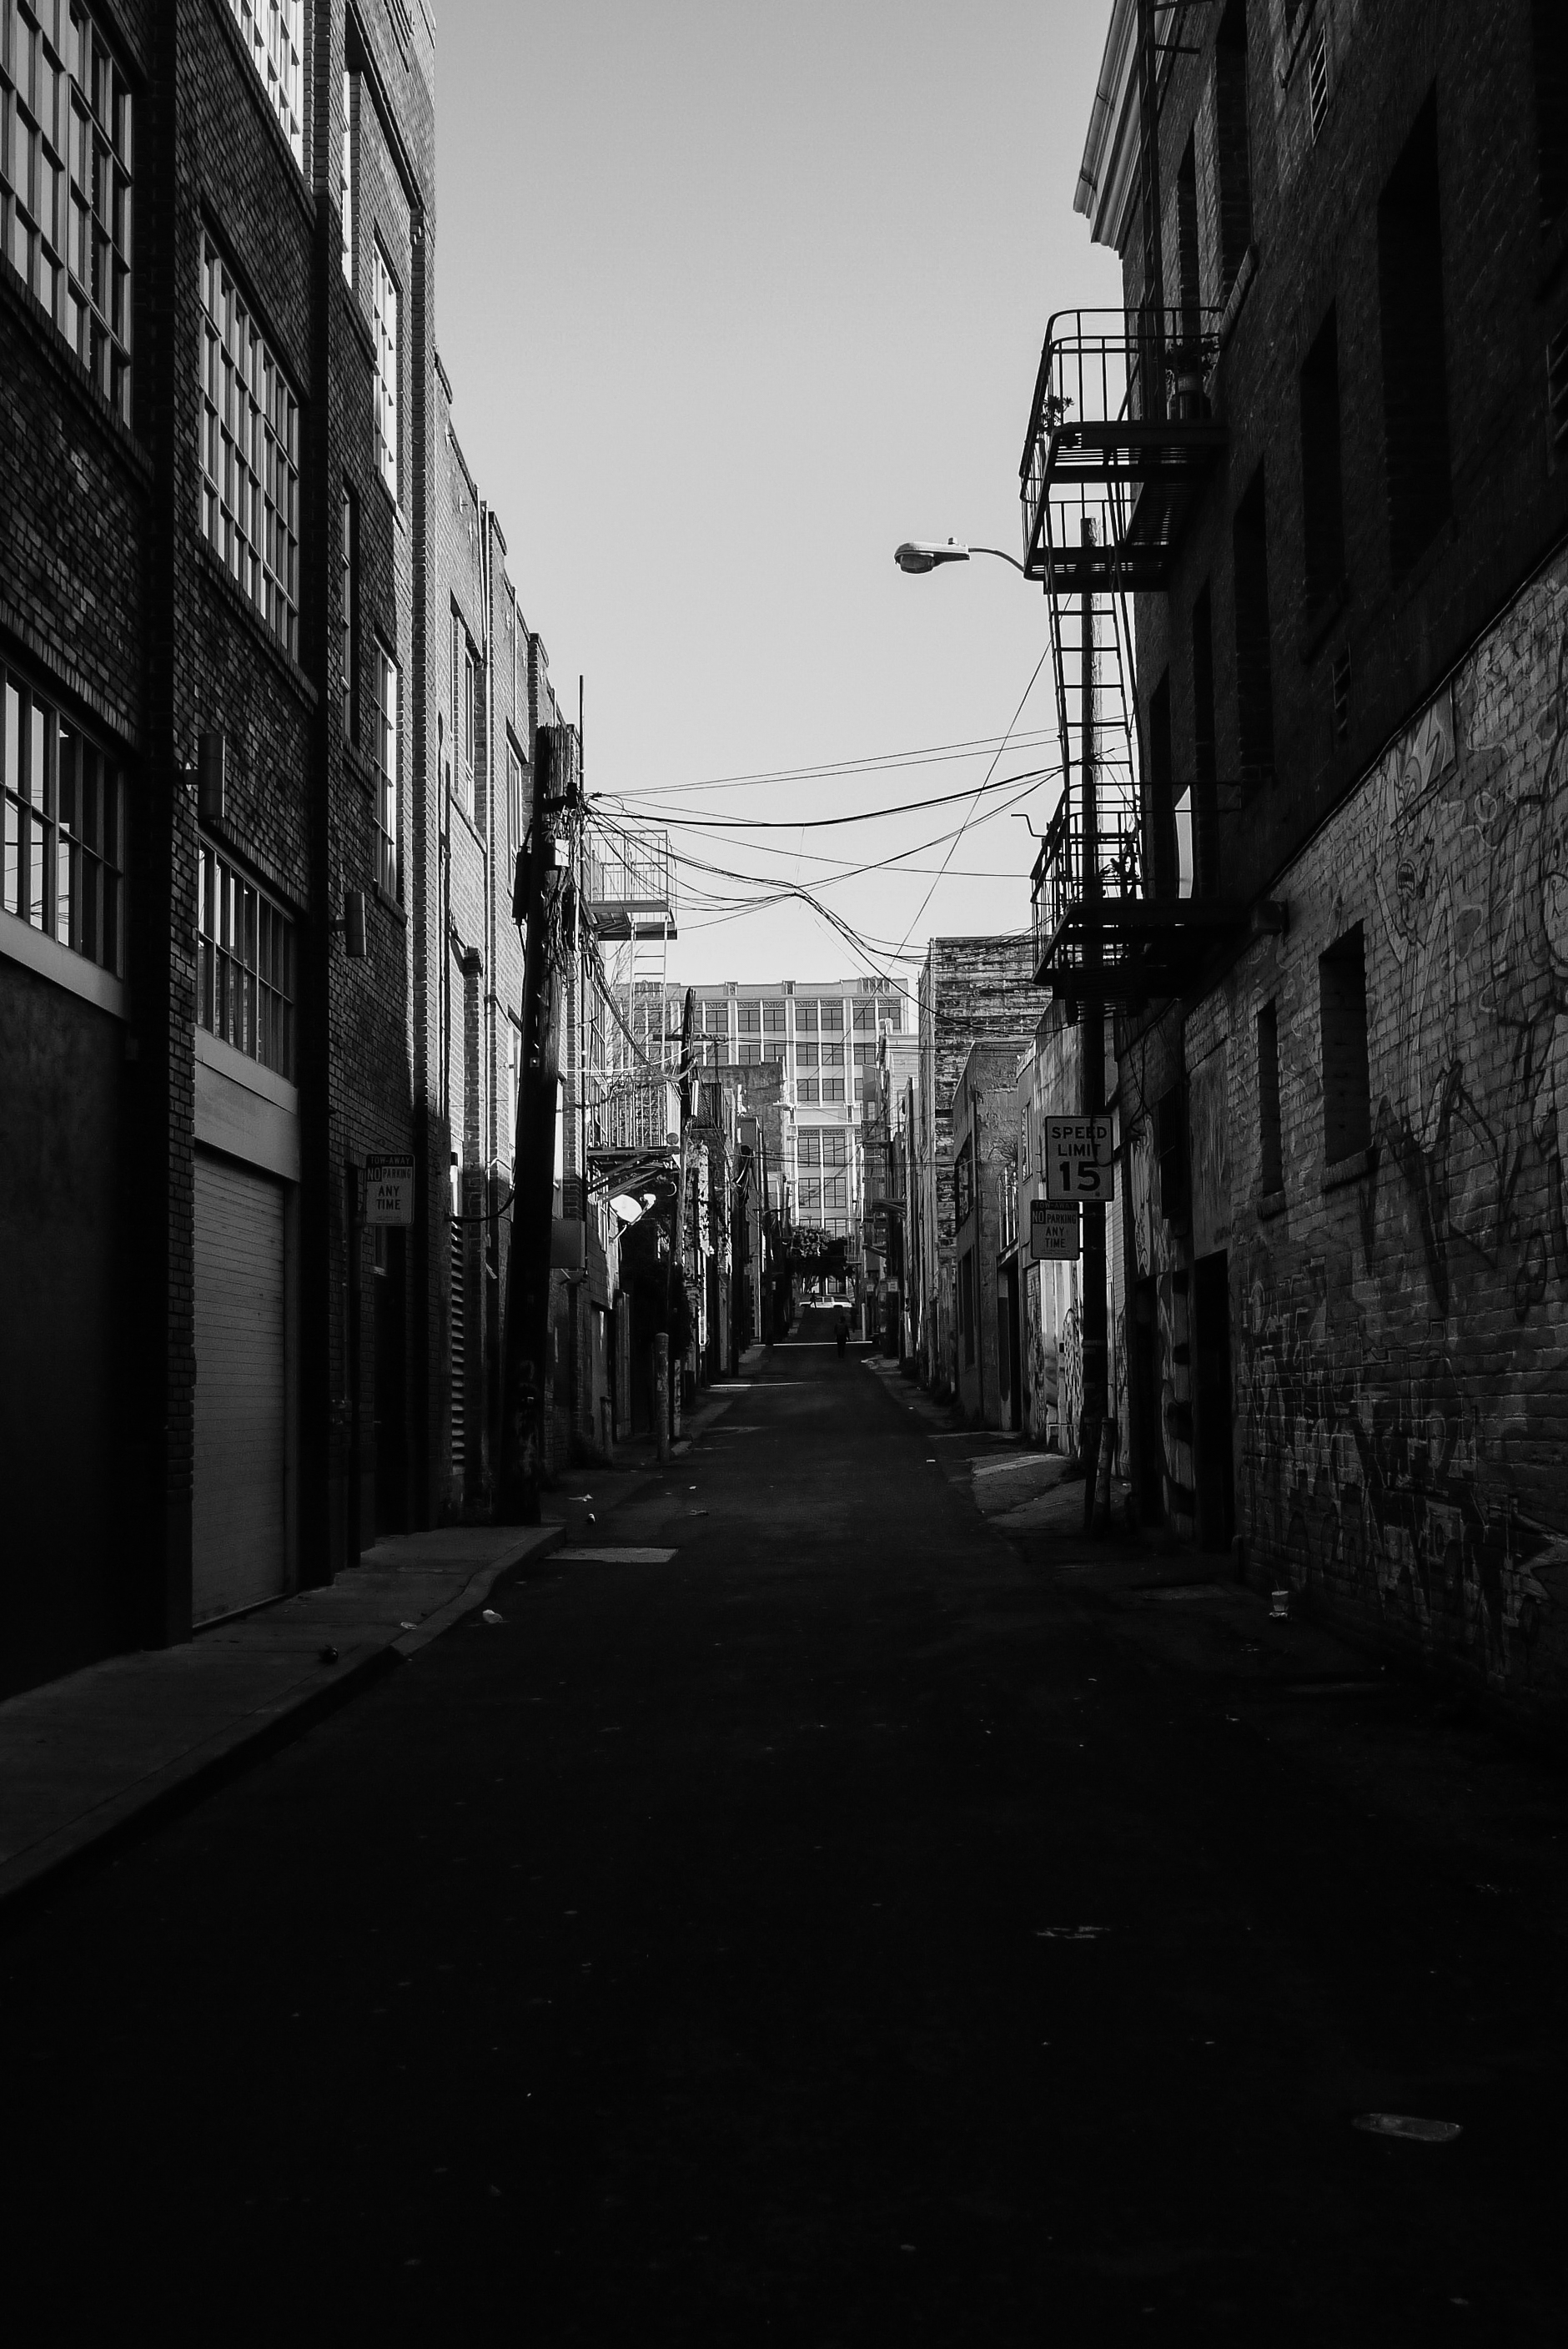 "<p style=""font-family:brandon-grotesque;font-weight:500; font-size:11px; text-center:left; color:light grey;letter-spacing: 1px"">JANUARY 5, 2017 • A PATH TO NOWHERE • � San Francisco, CA</p>"